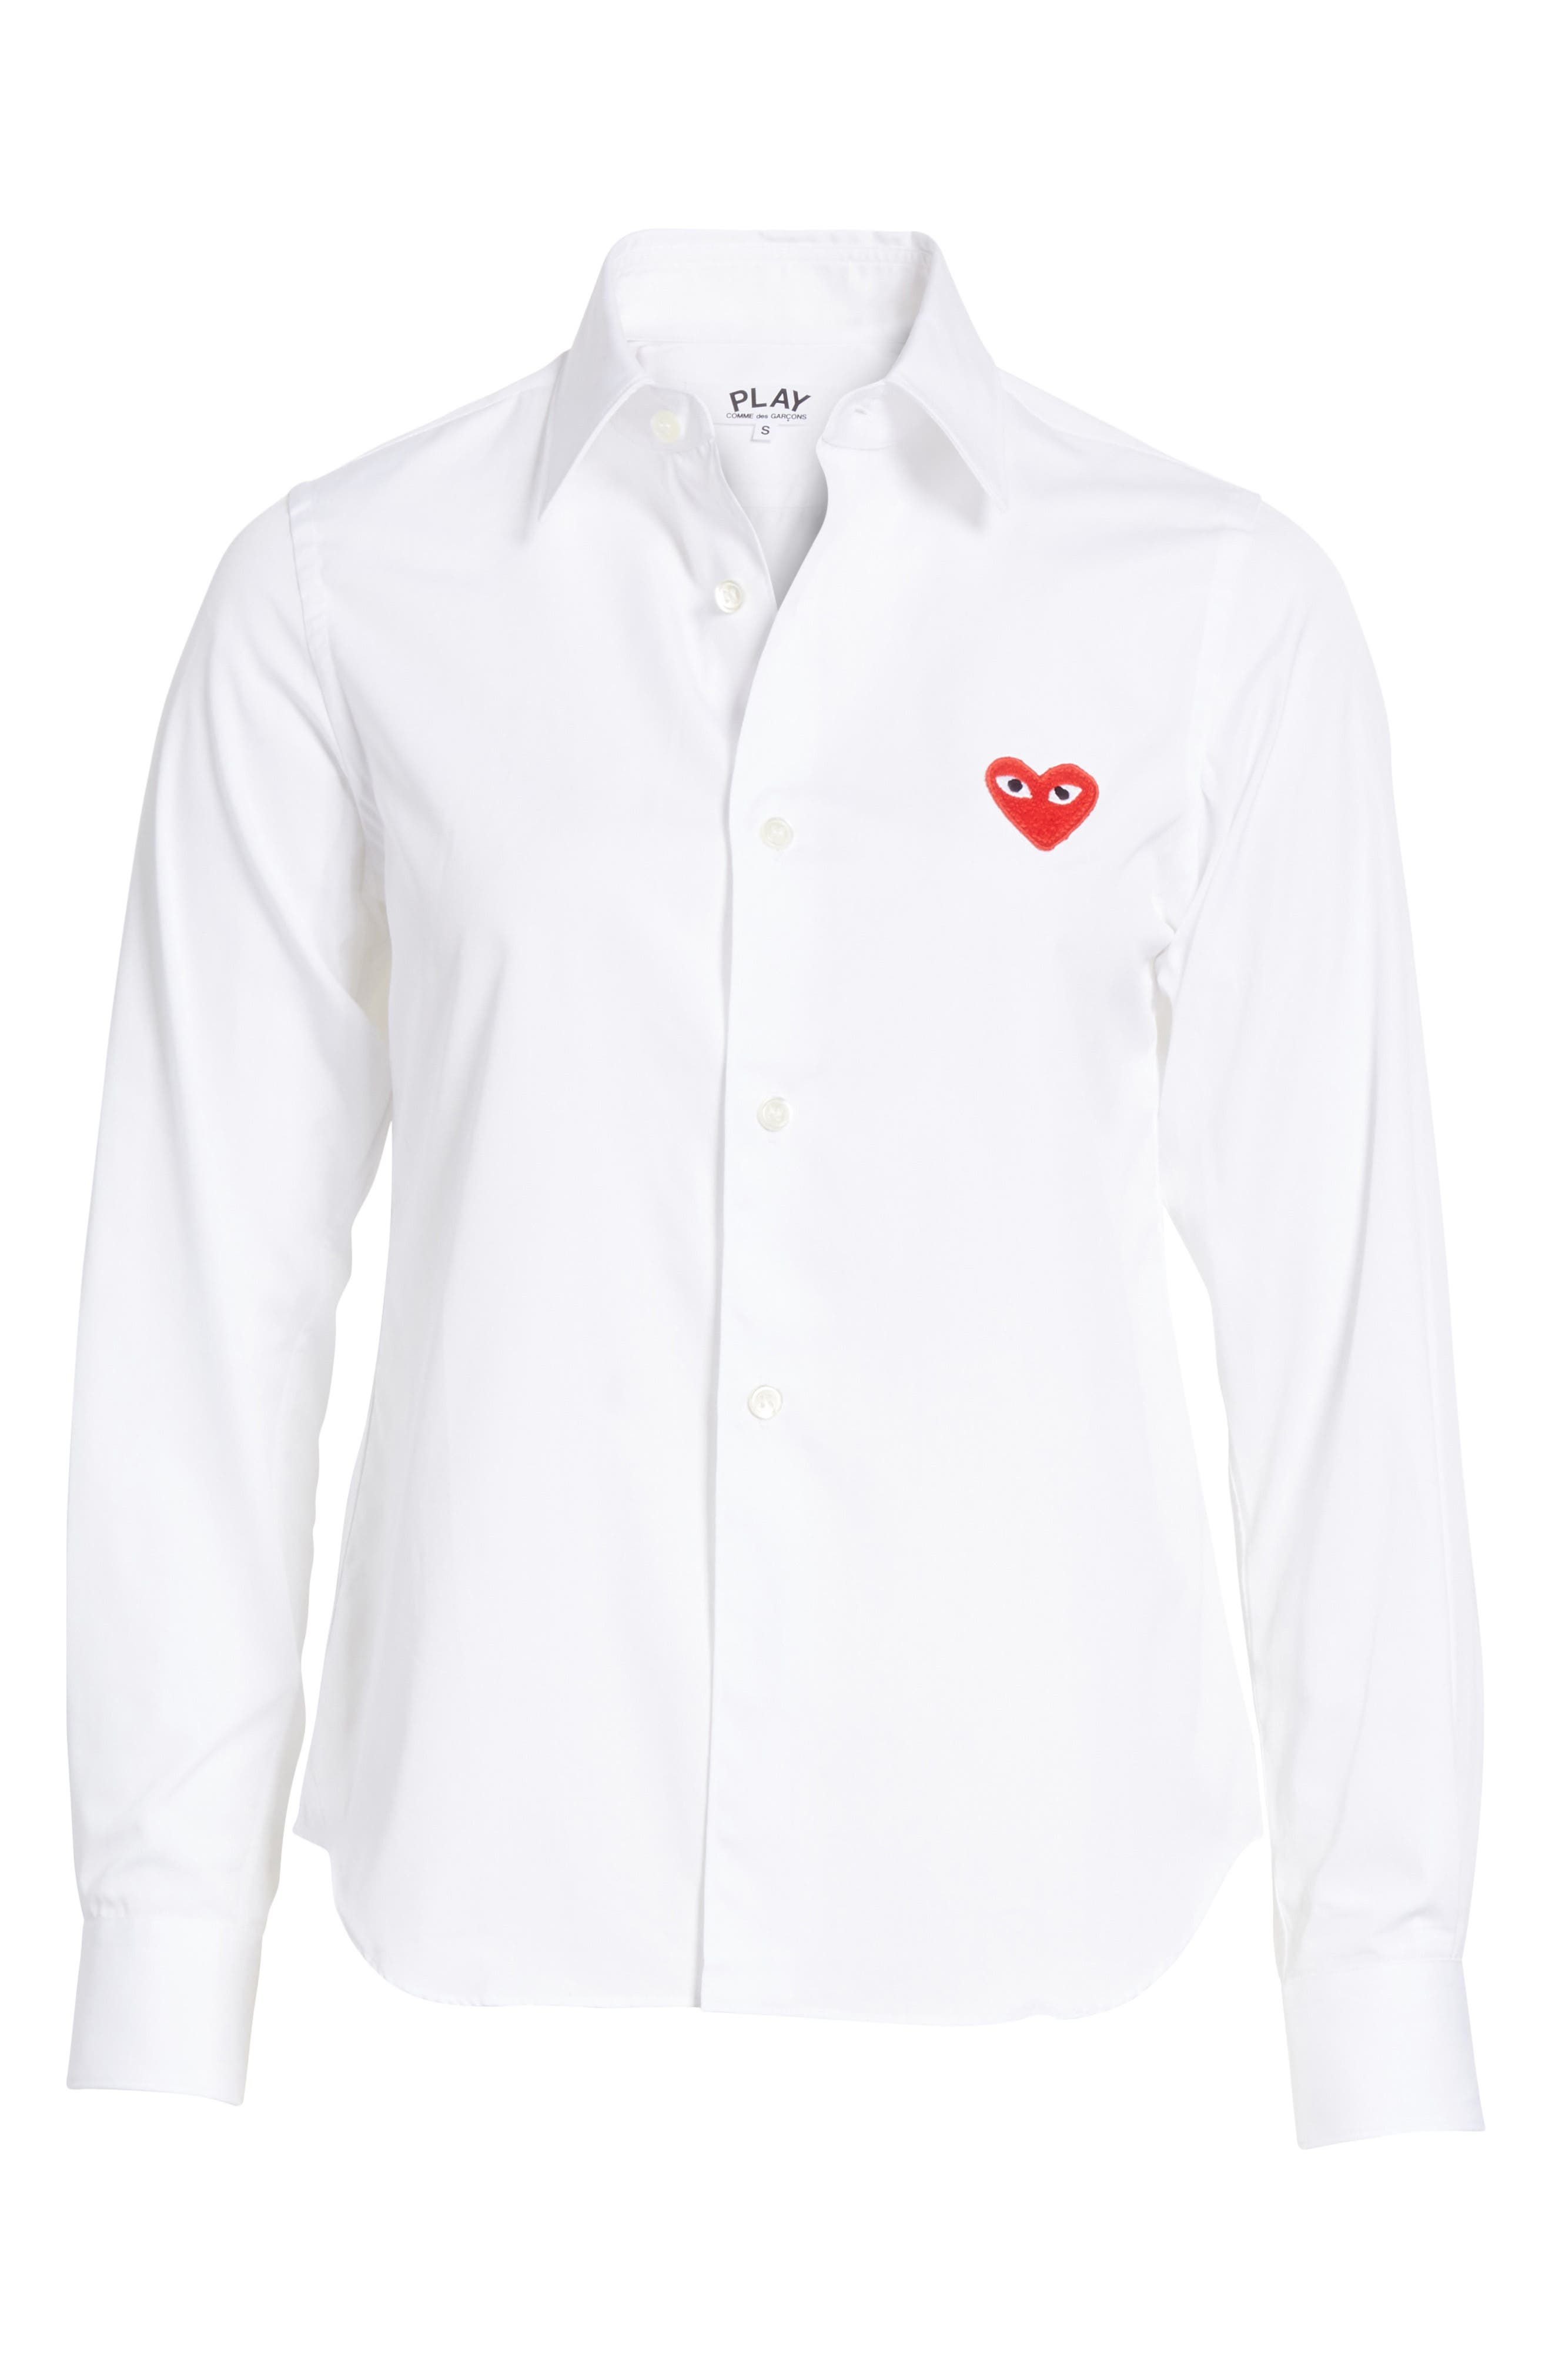 PLAY Red Heart Cotton Shirt,                             Alternate thumbnail 6, color,                             100